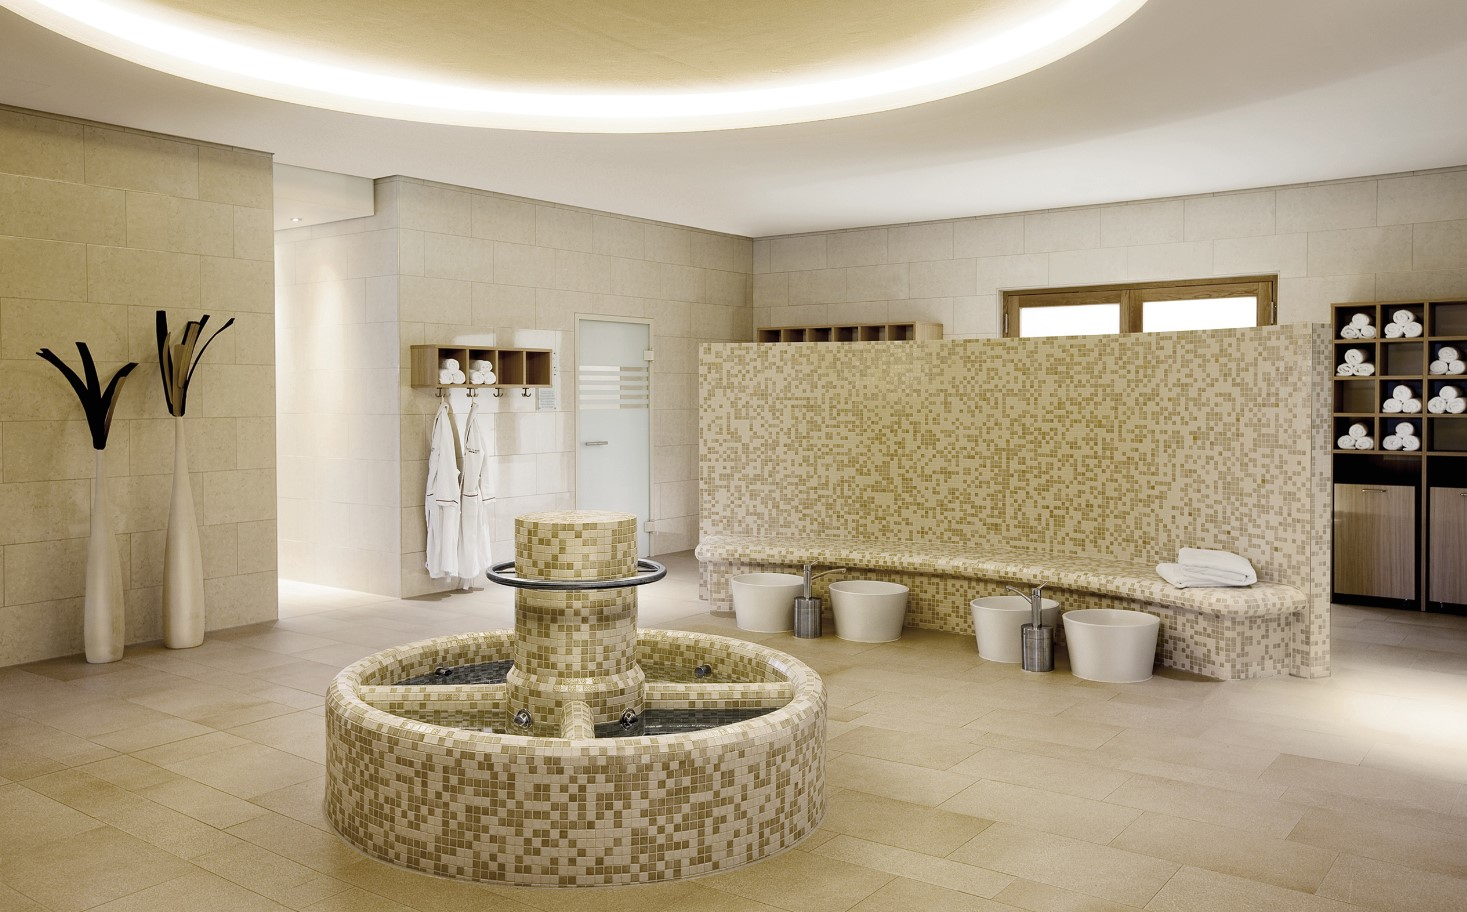 Five KLAFS thermal facilities every wellness area needs